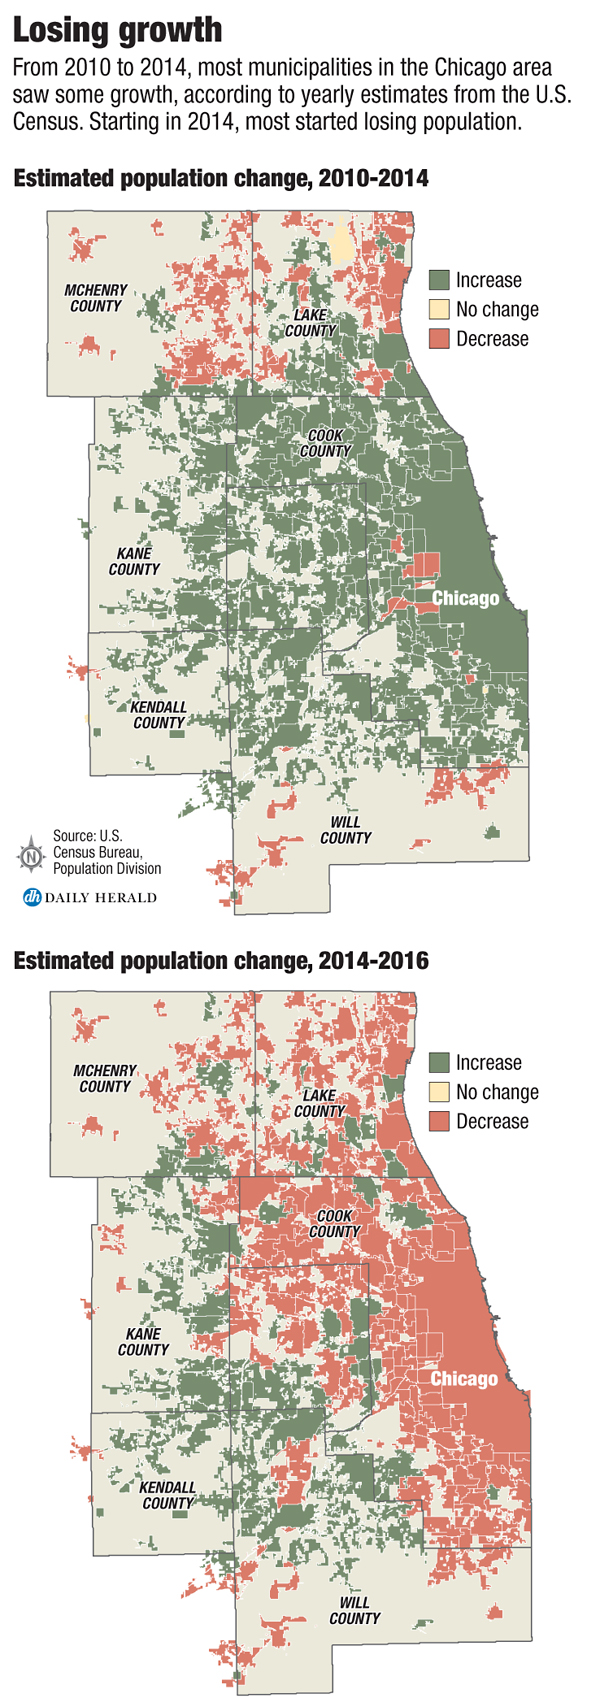 population decline now reaching into suburbs